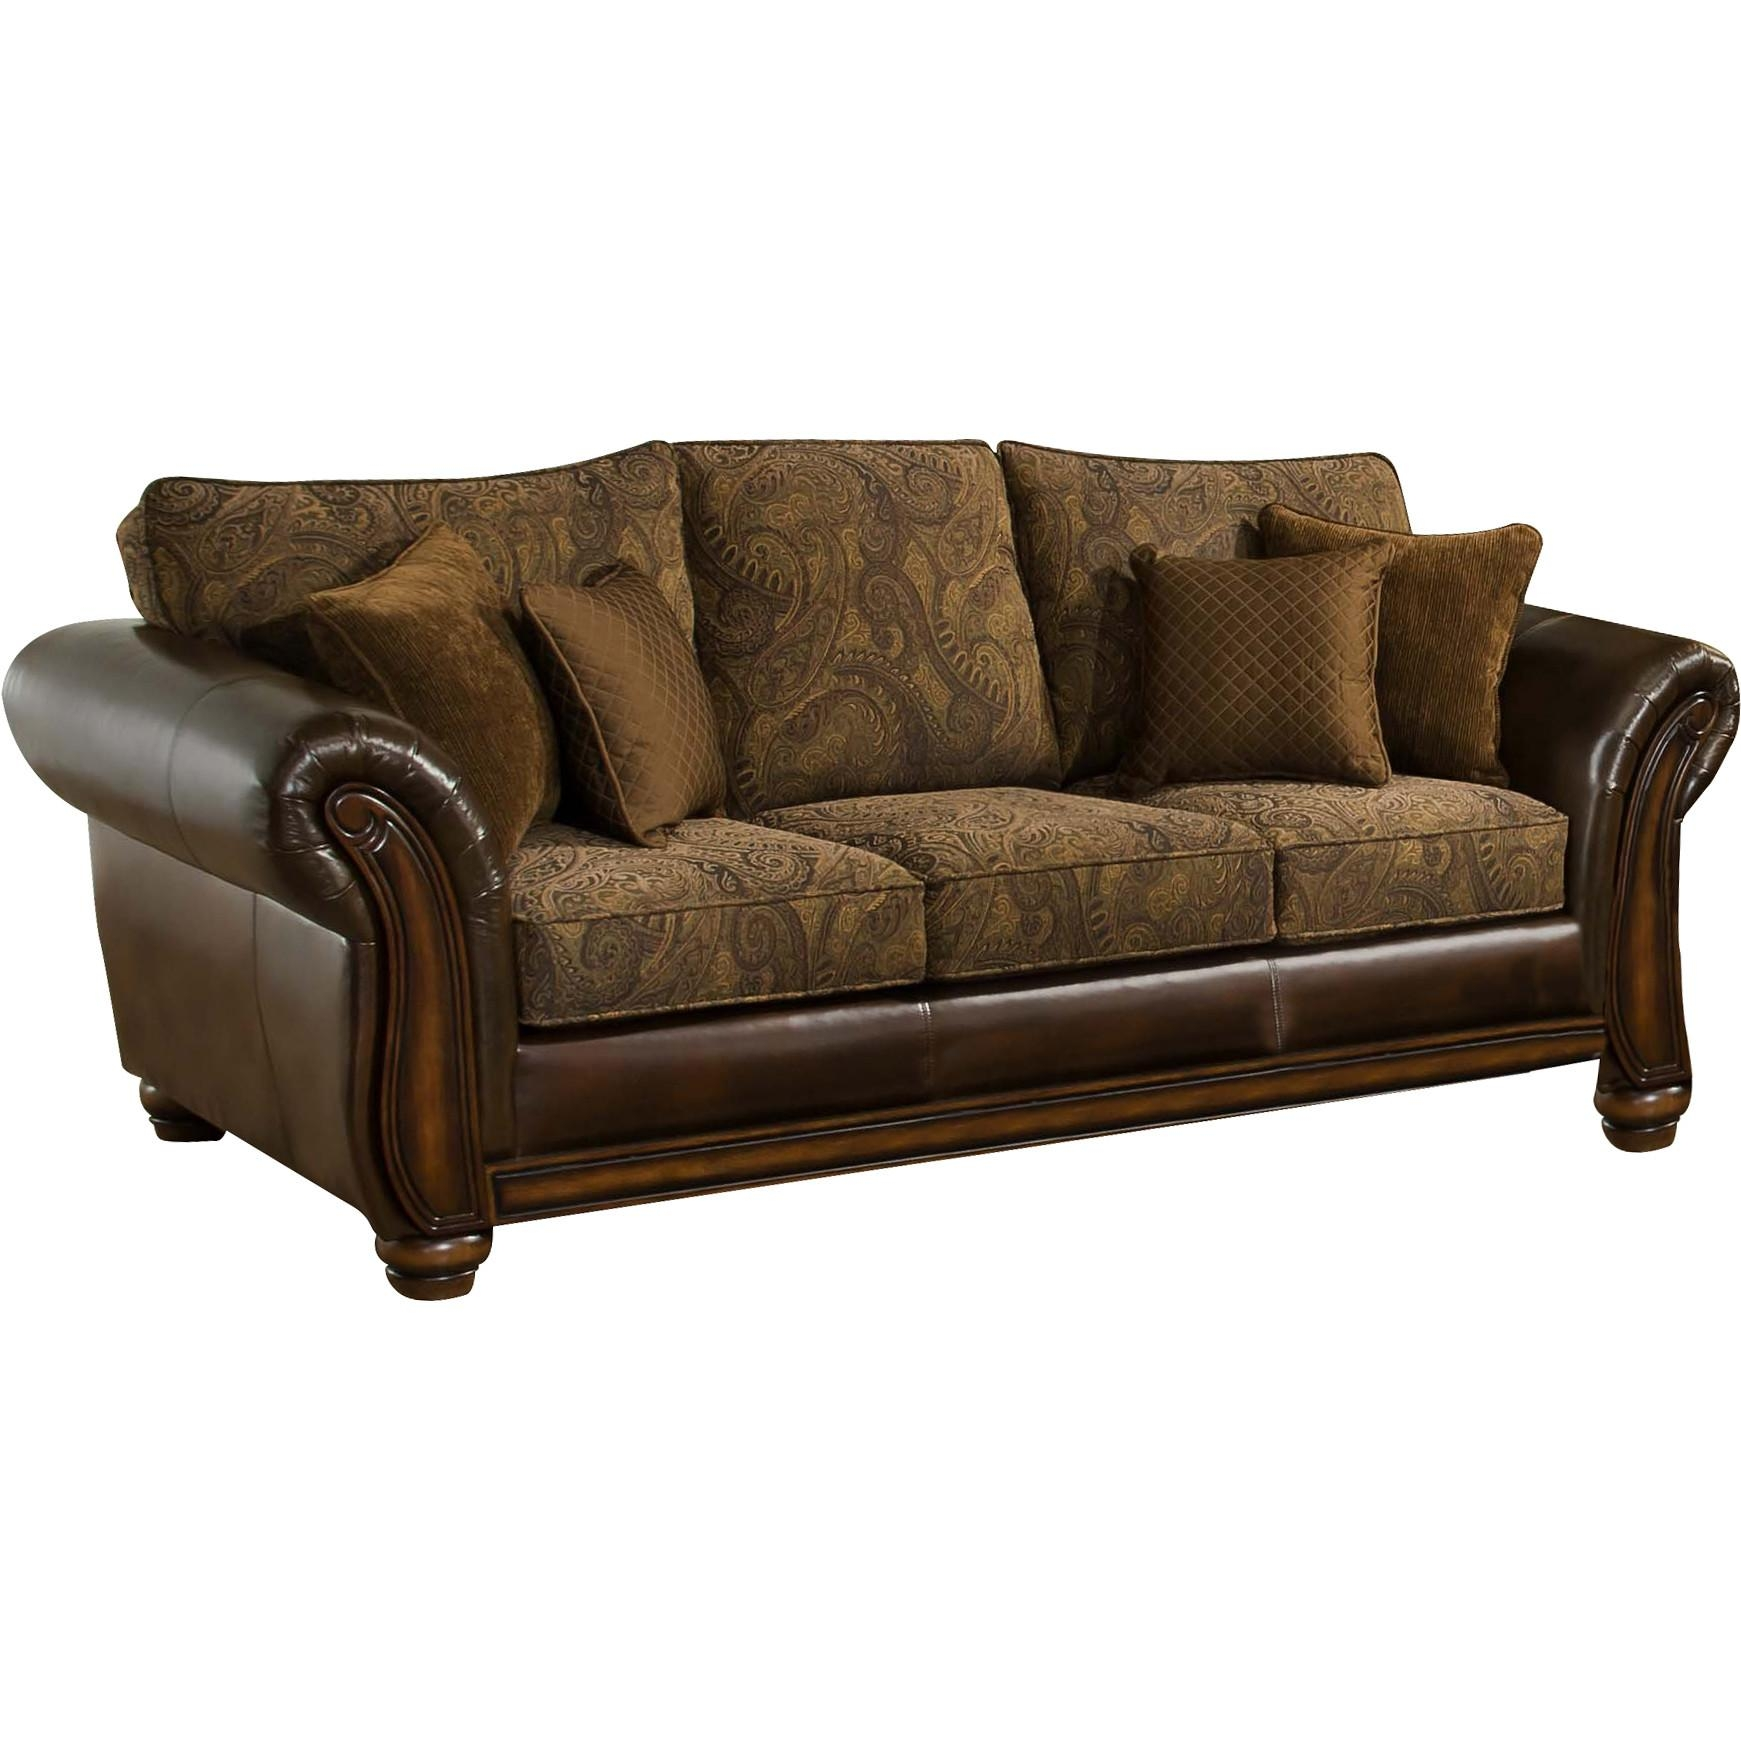 Simmons Upholstery Brown Leather Zephyr Queen Sleeper Sofa | Sofa Regarding Simmons Sleeper Sofas (Image 10 of 20)